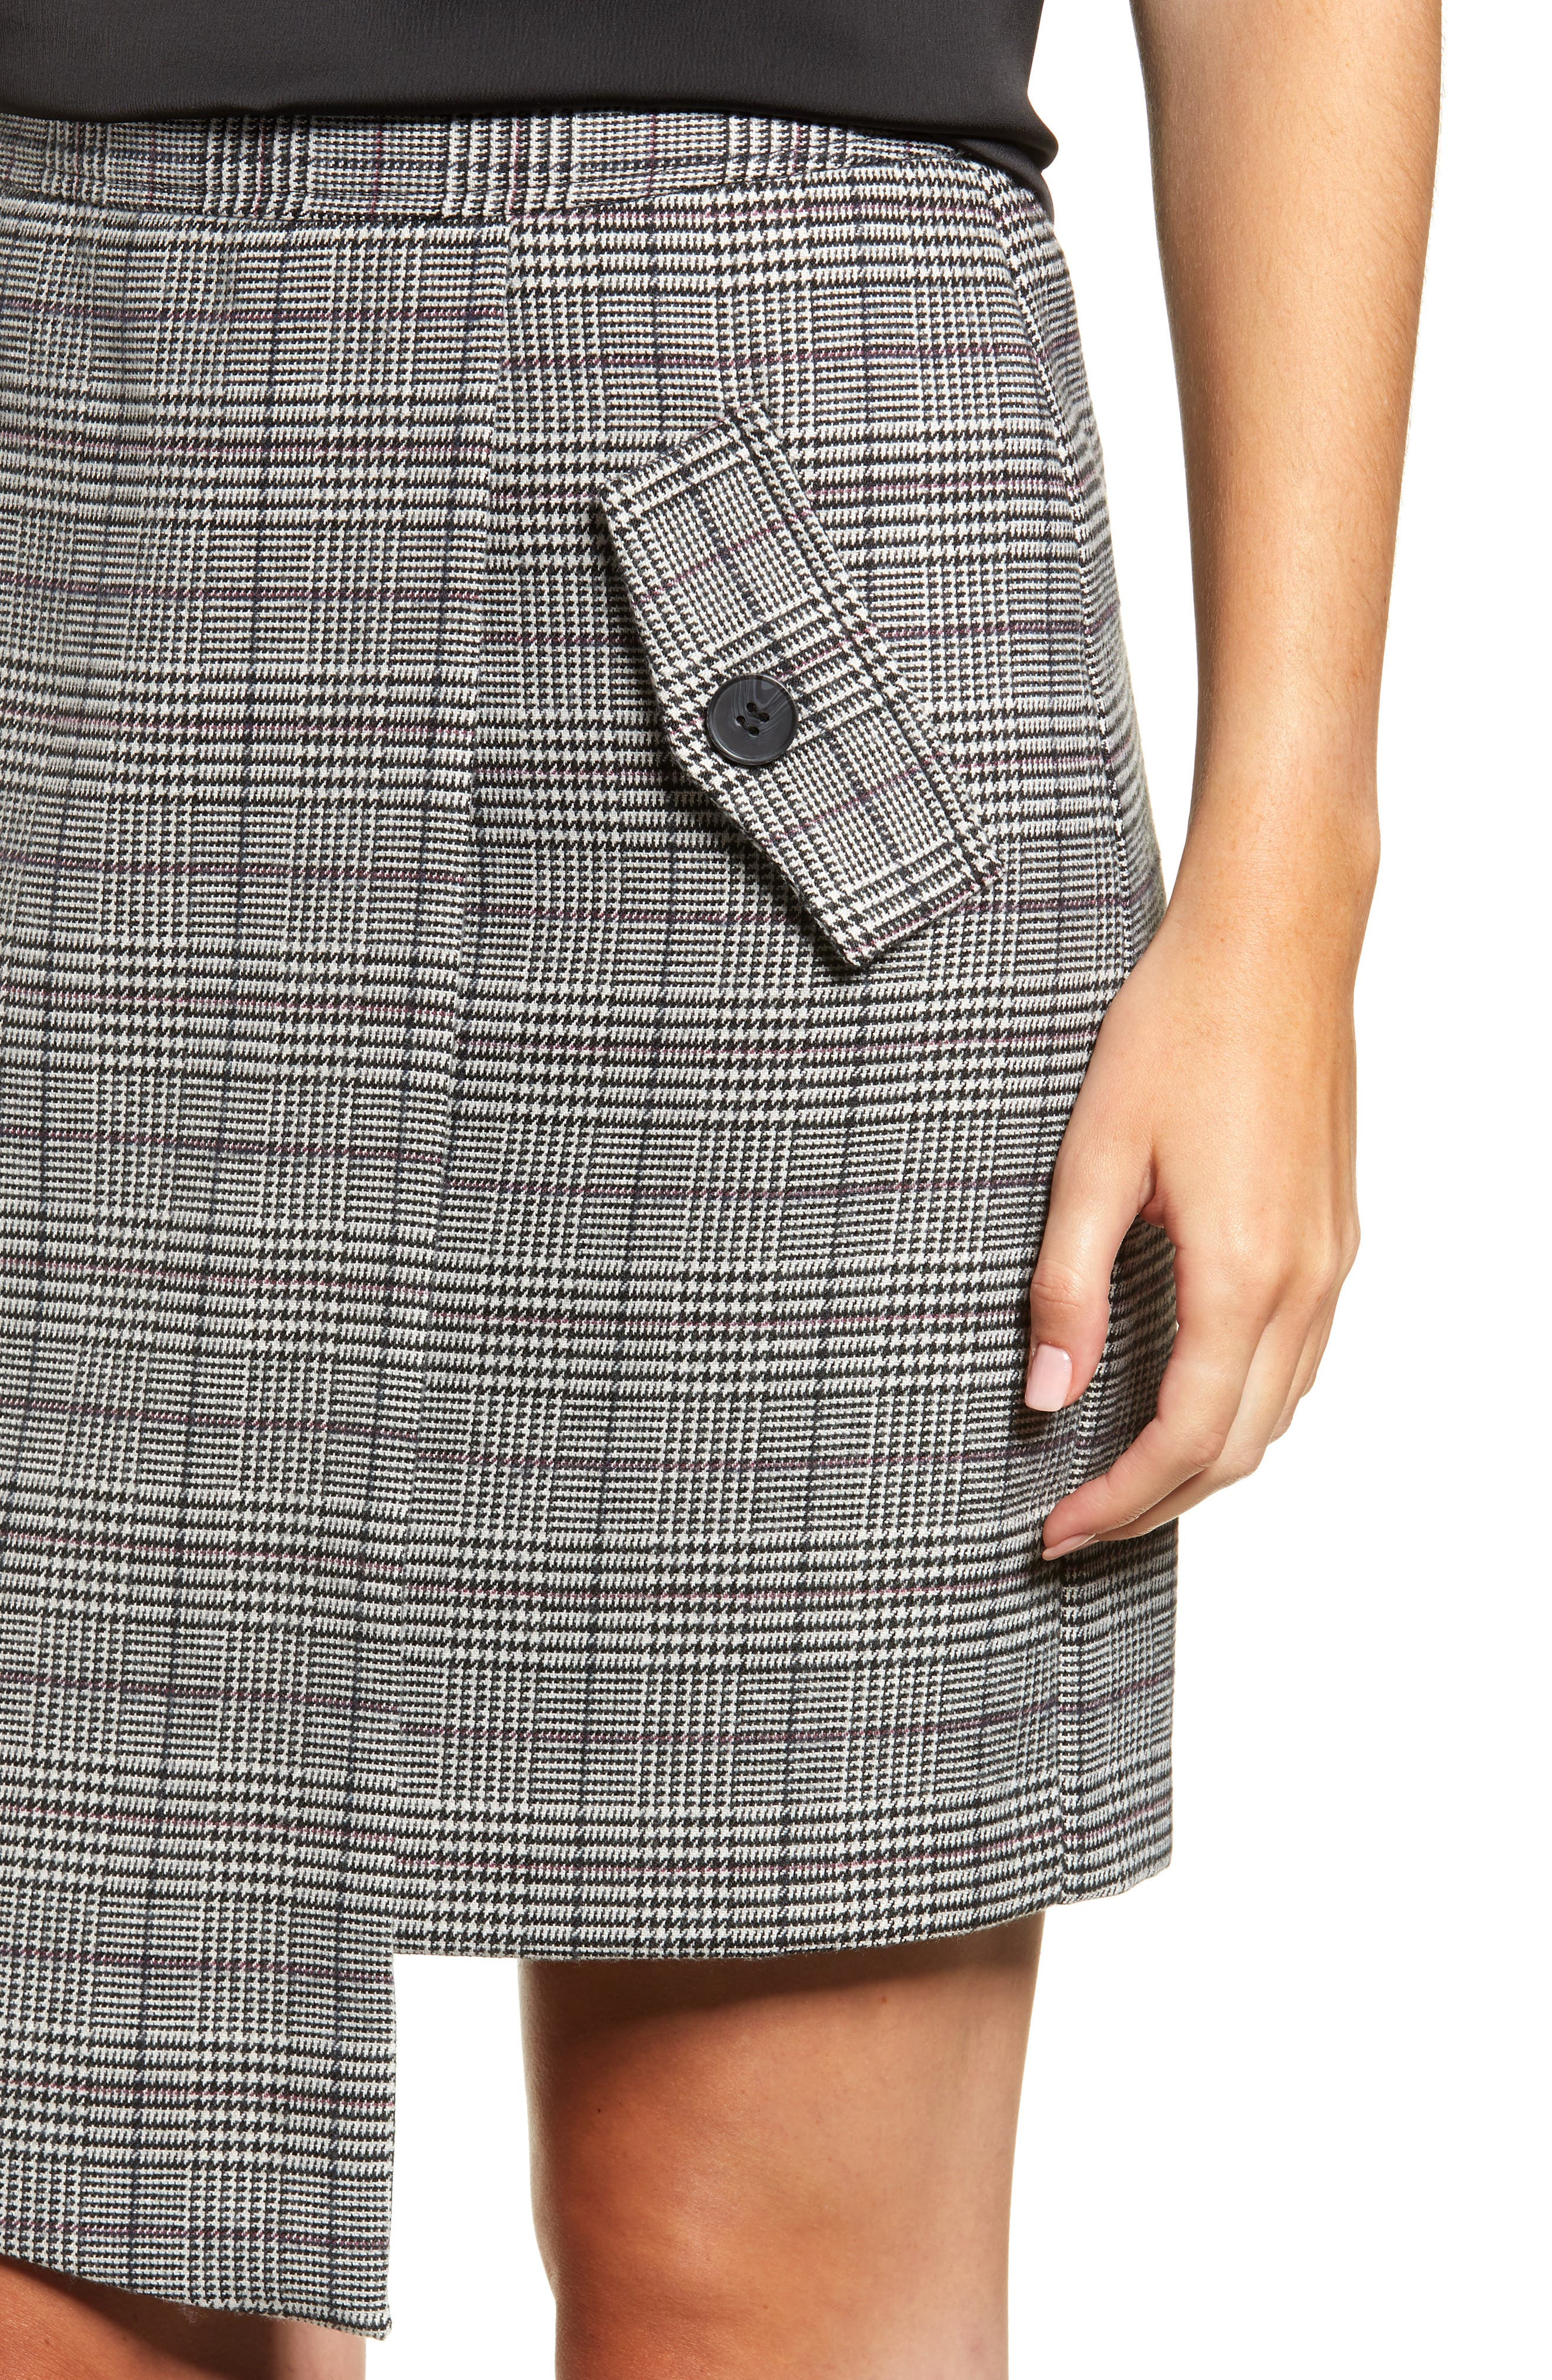 Chriselle Lim Bianca Houndstooth Button Front Skirt,                             Alternate thumbnail 5, color,                             GREY PLAID